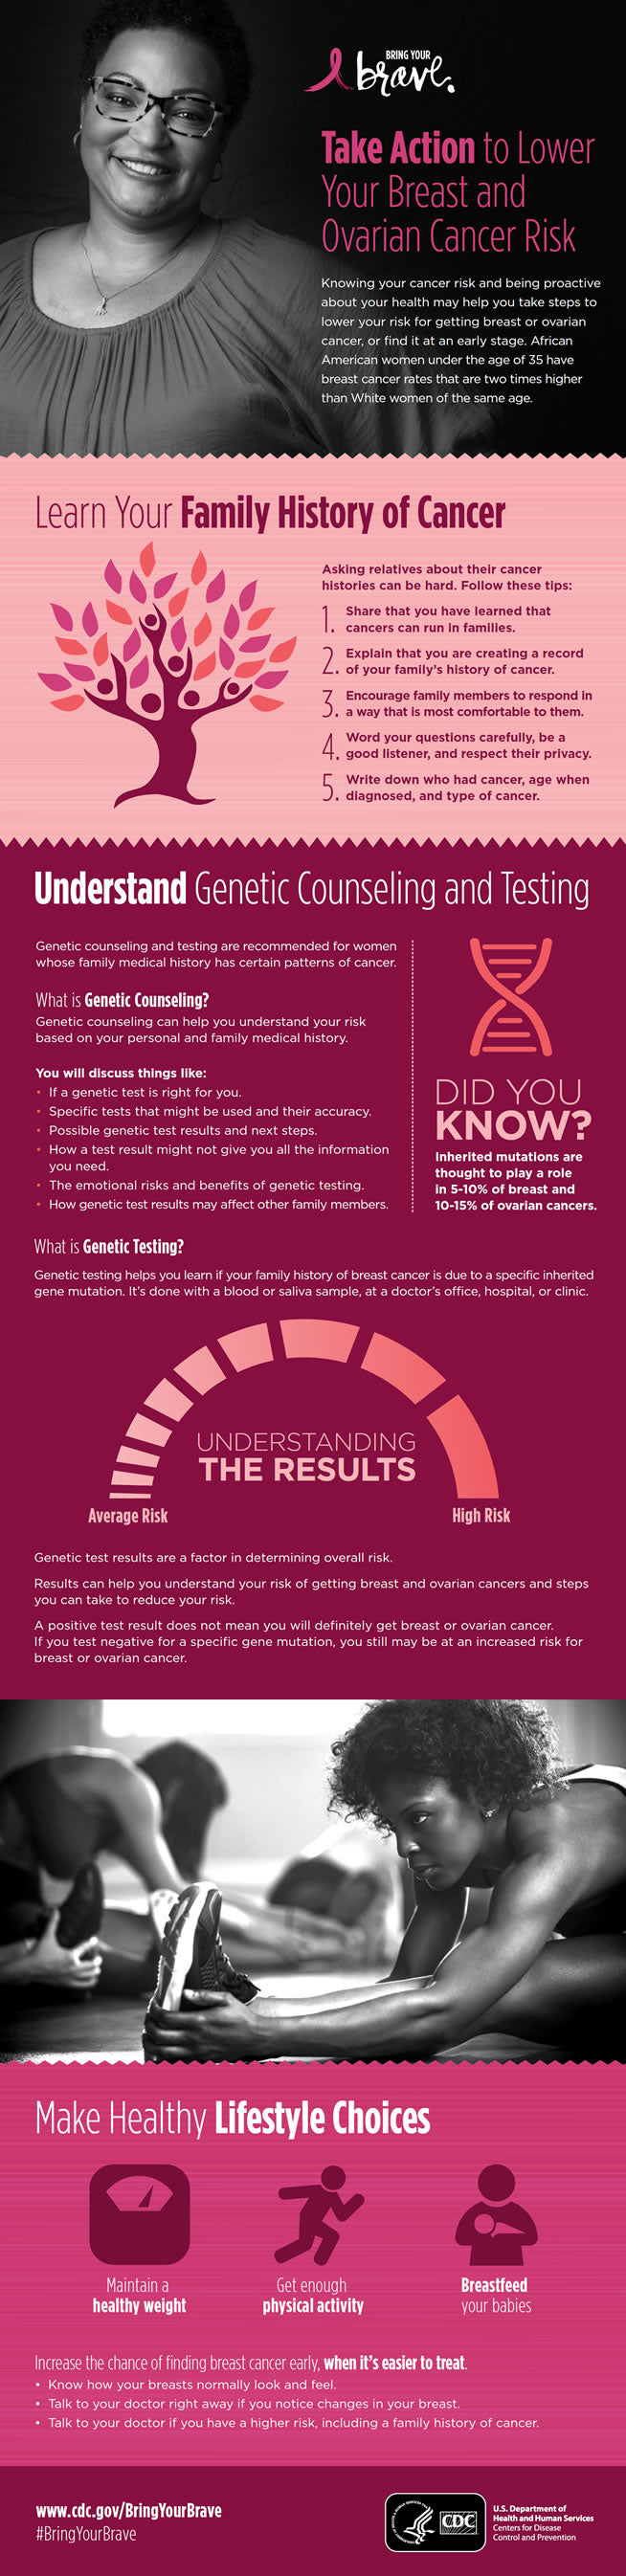 Breast and ovarian cancer infographic